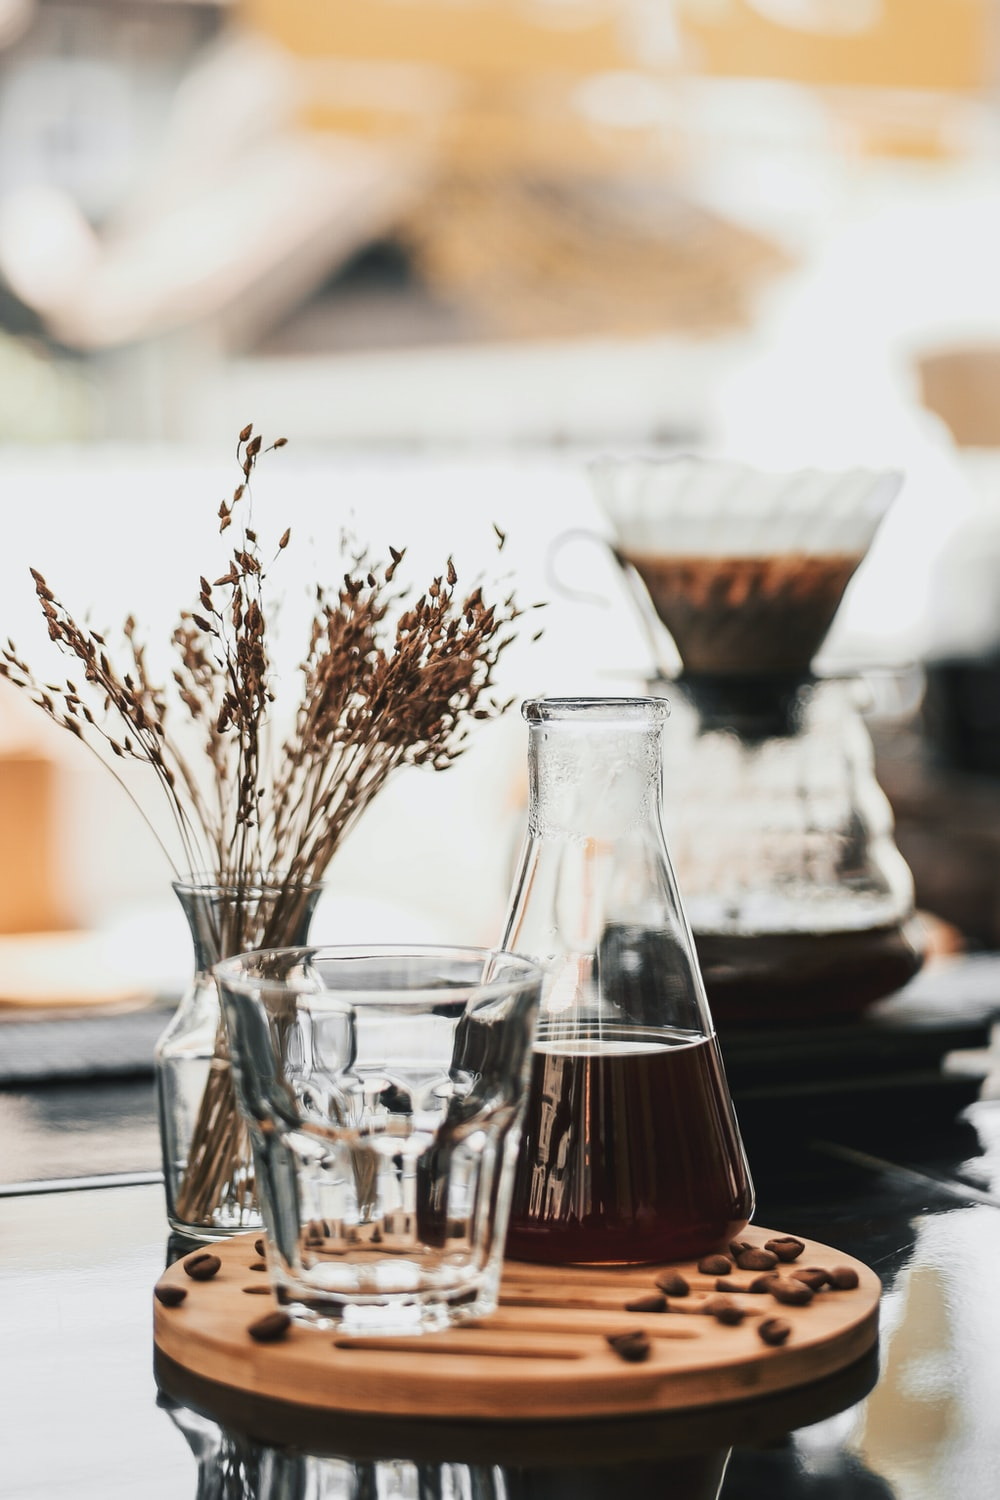 drinking glass beside glass flask and vase